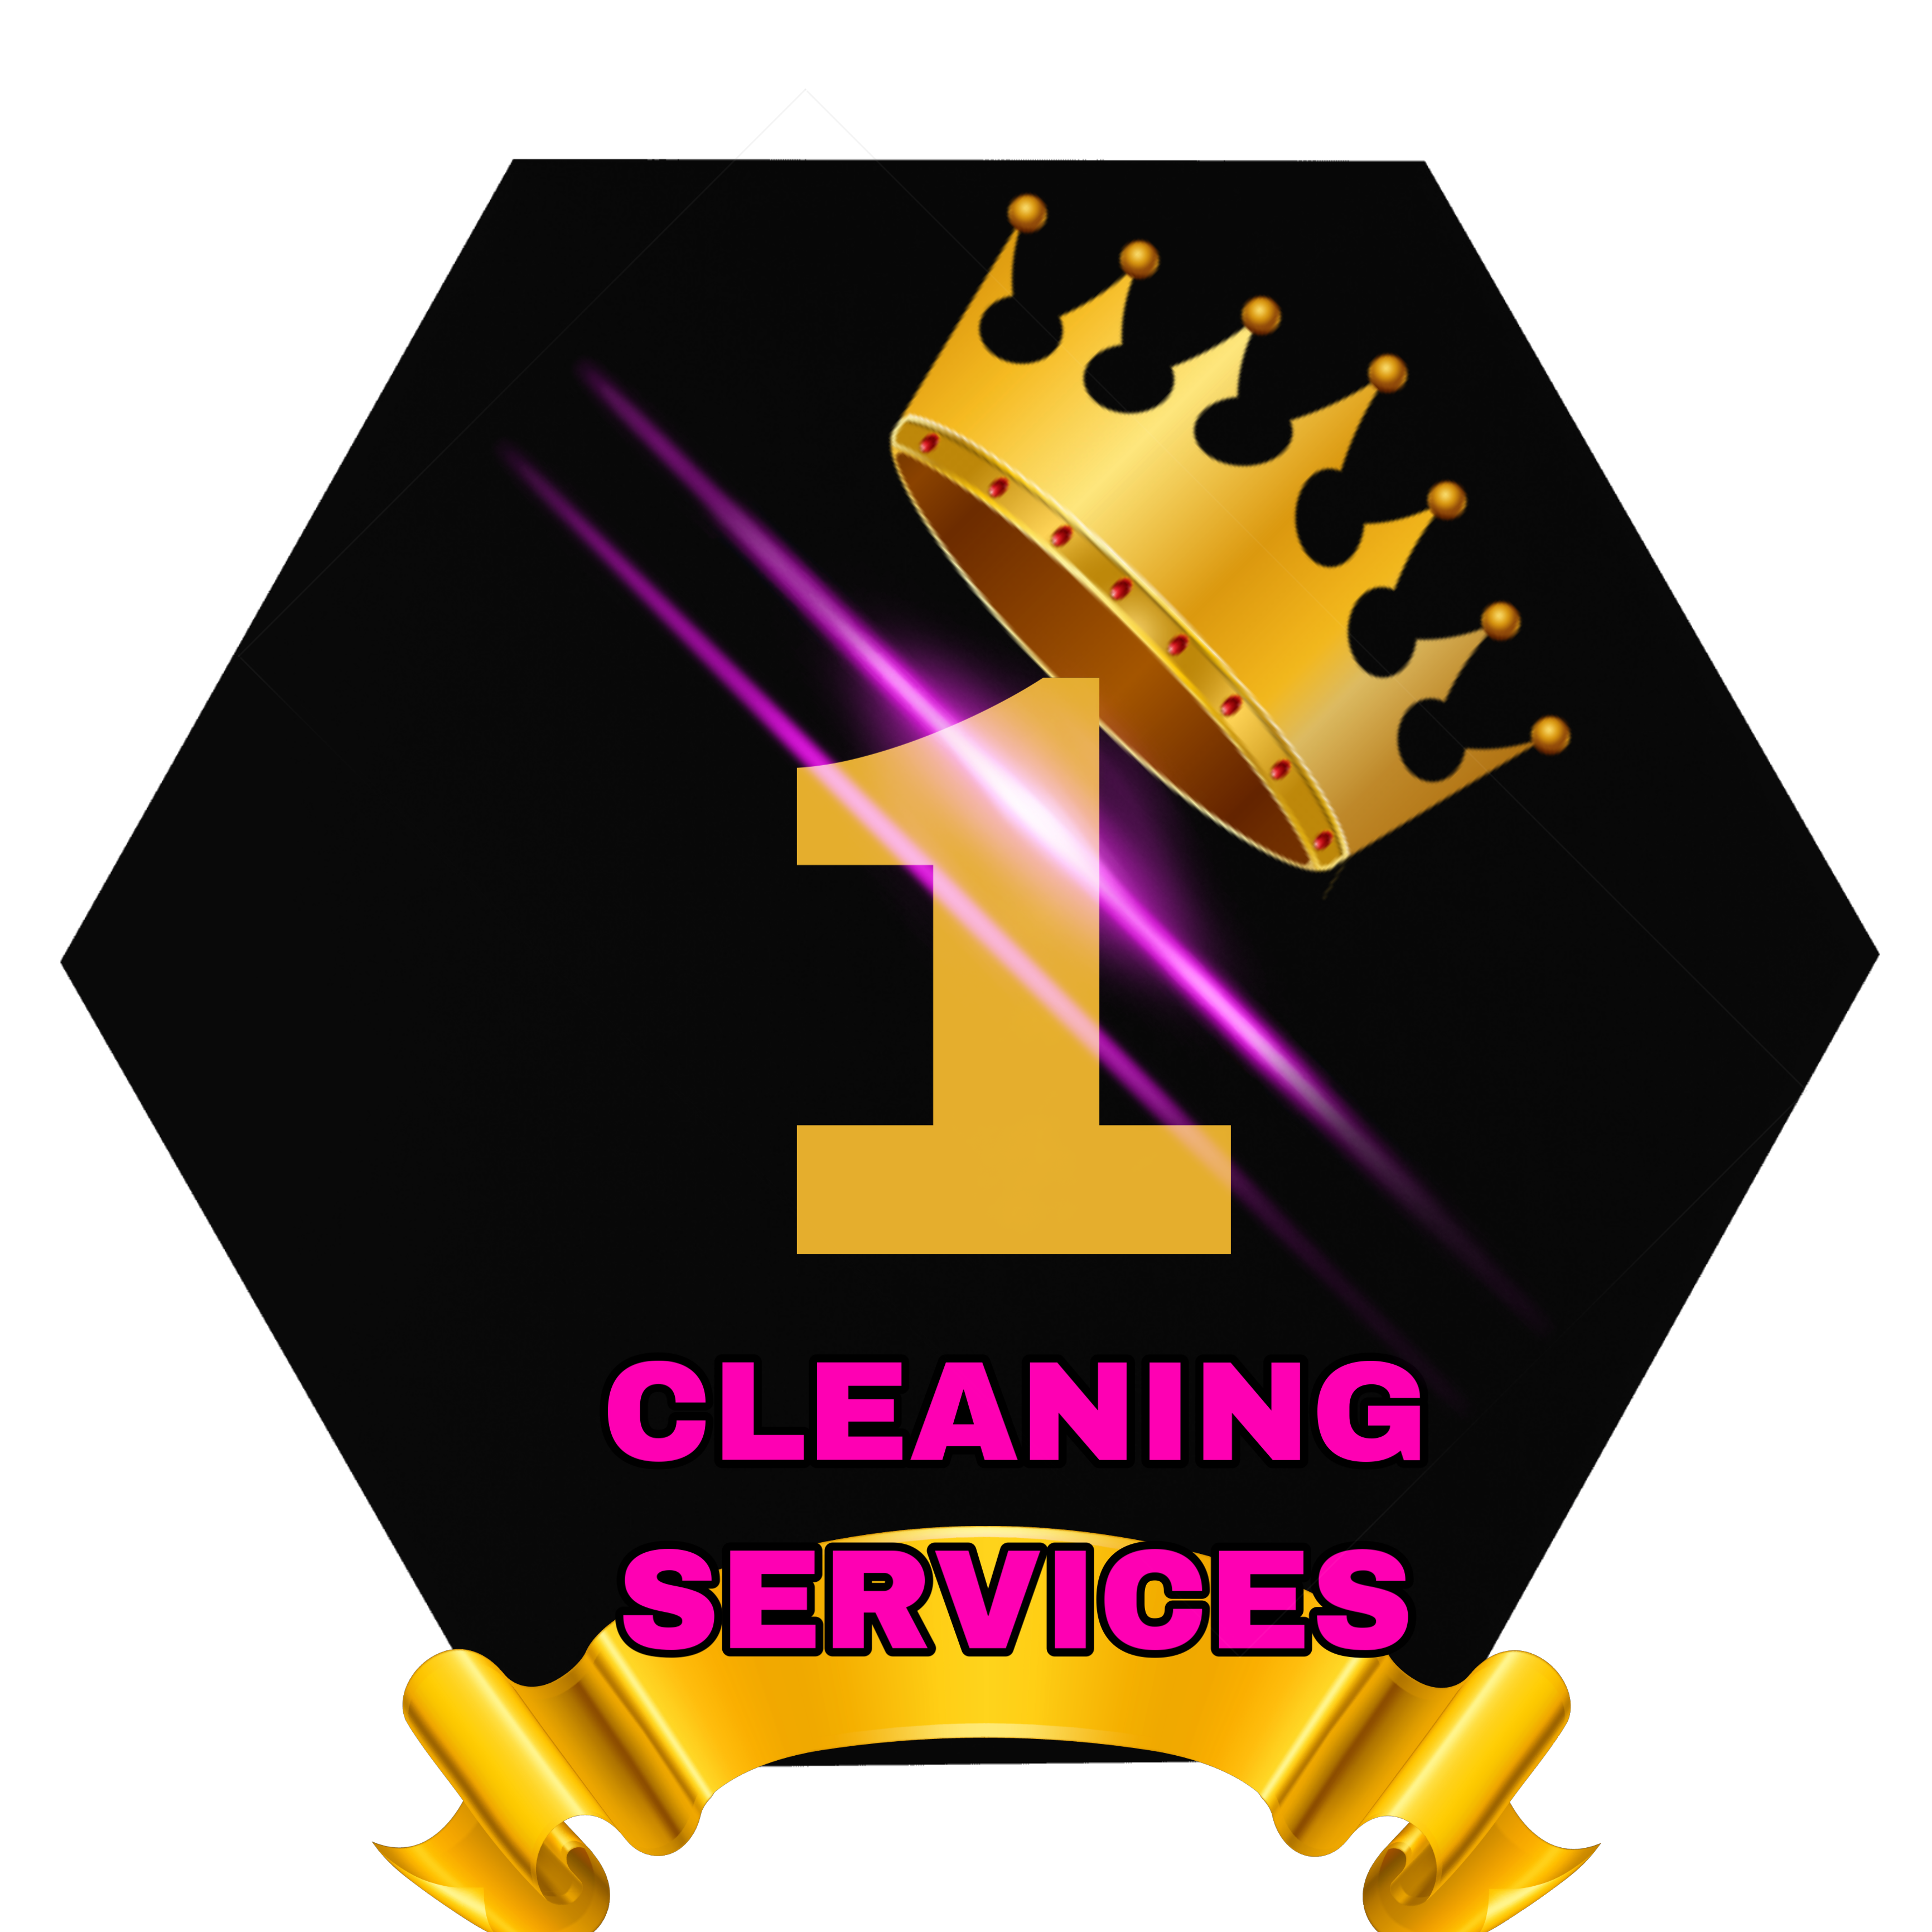 #1 Cleaning Services  image